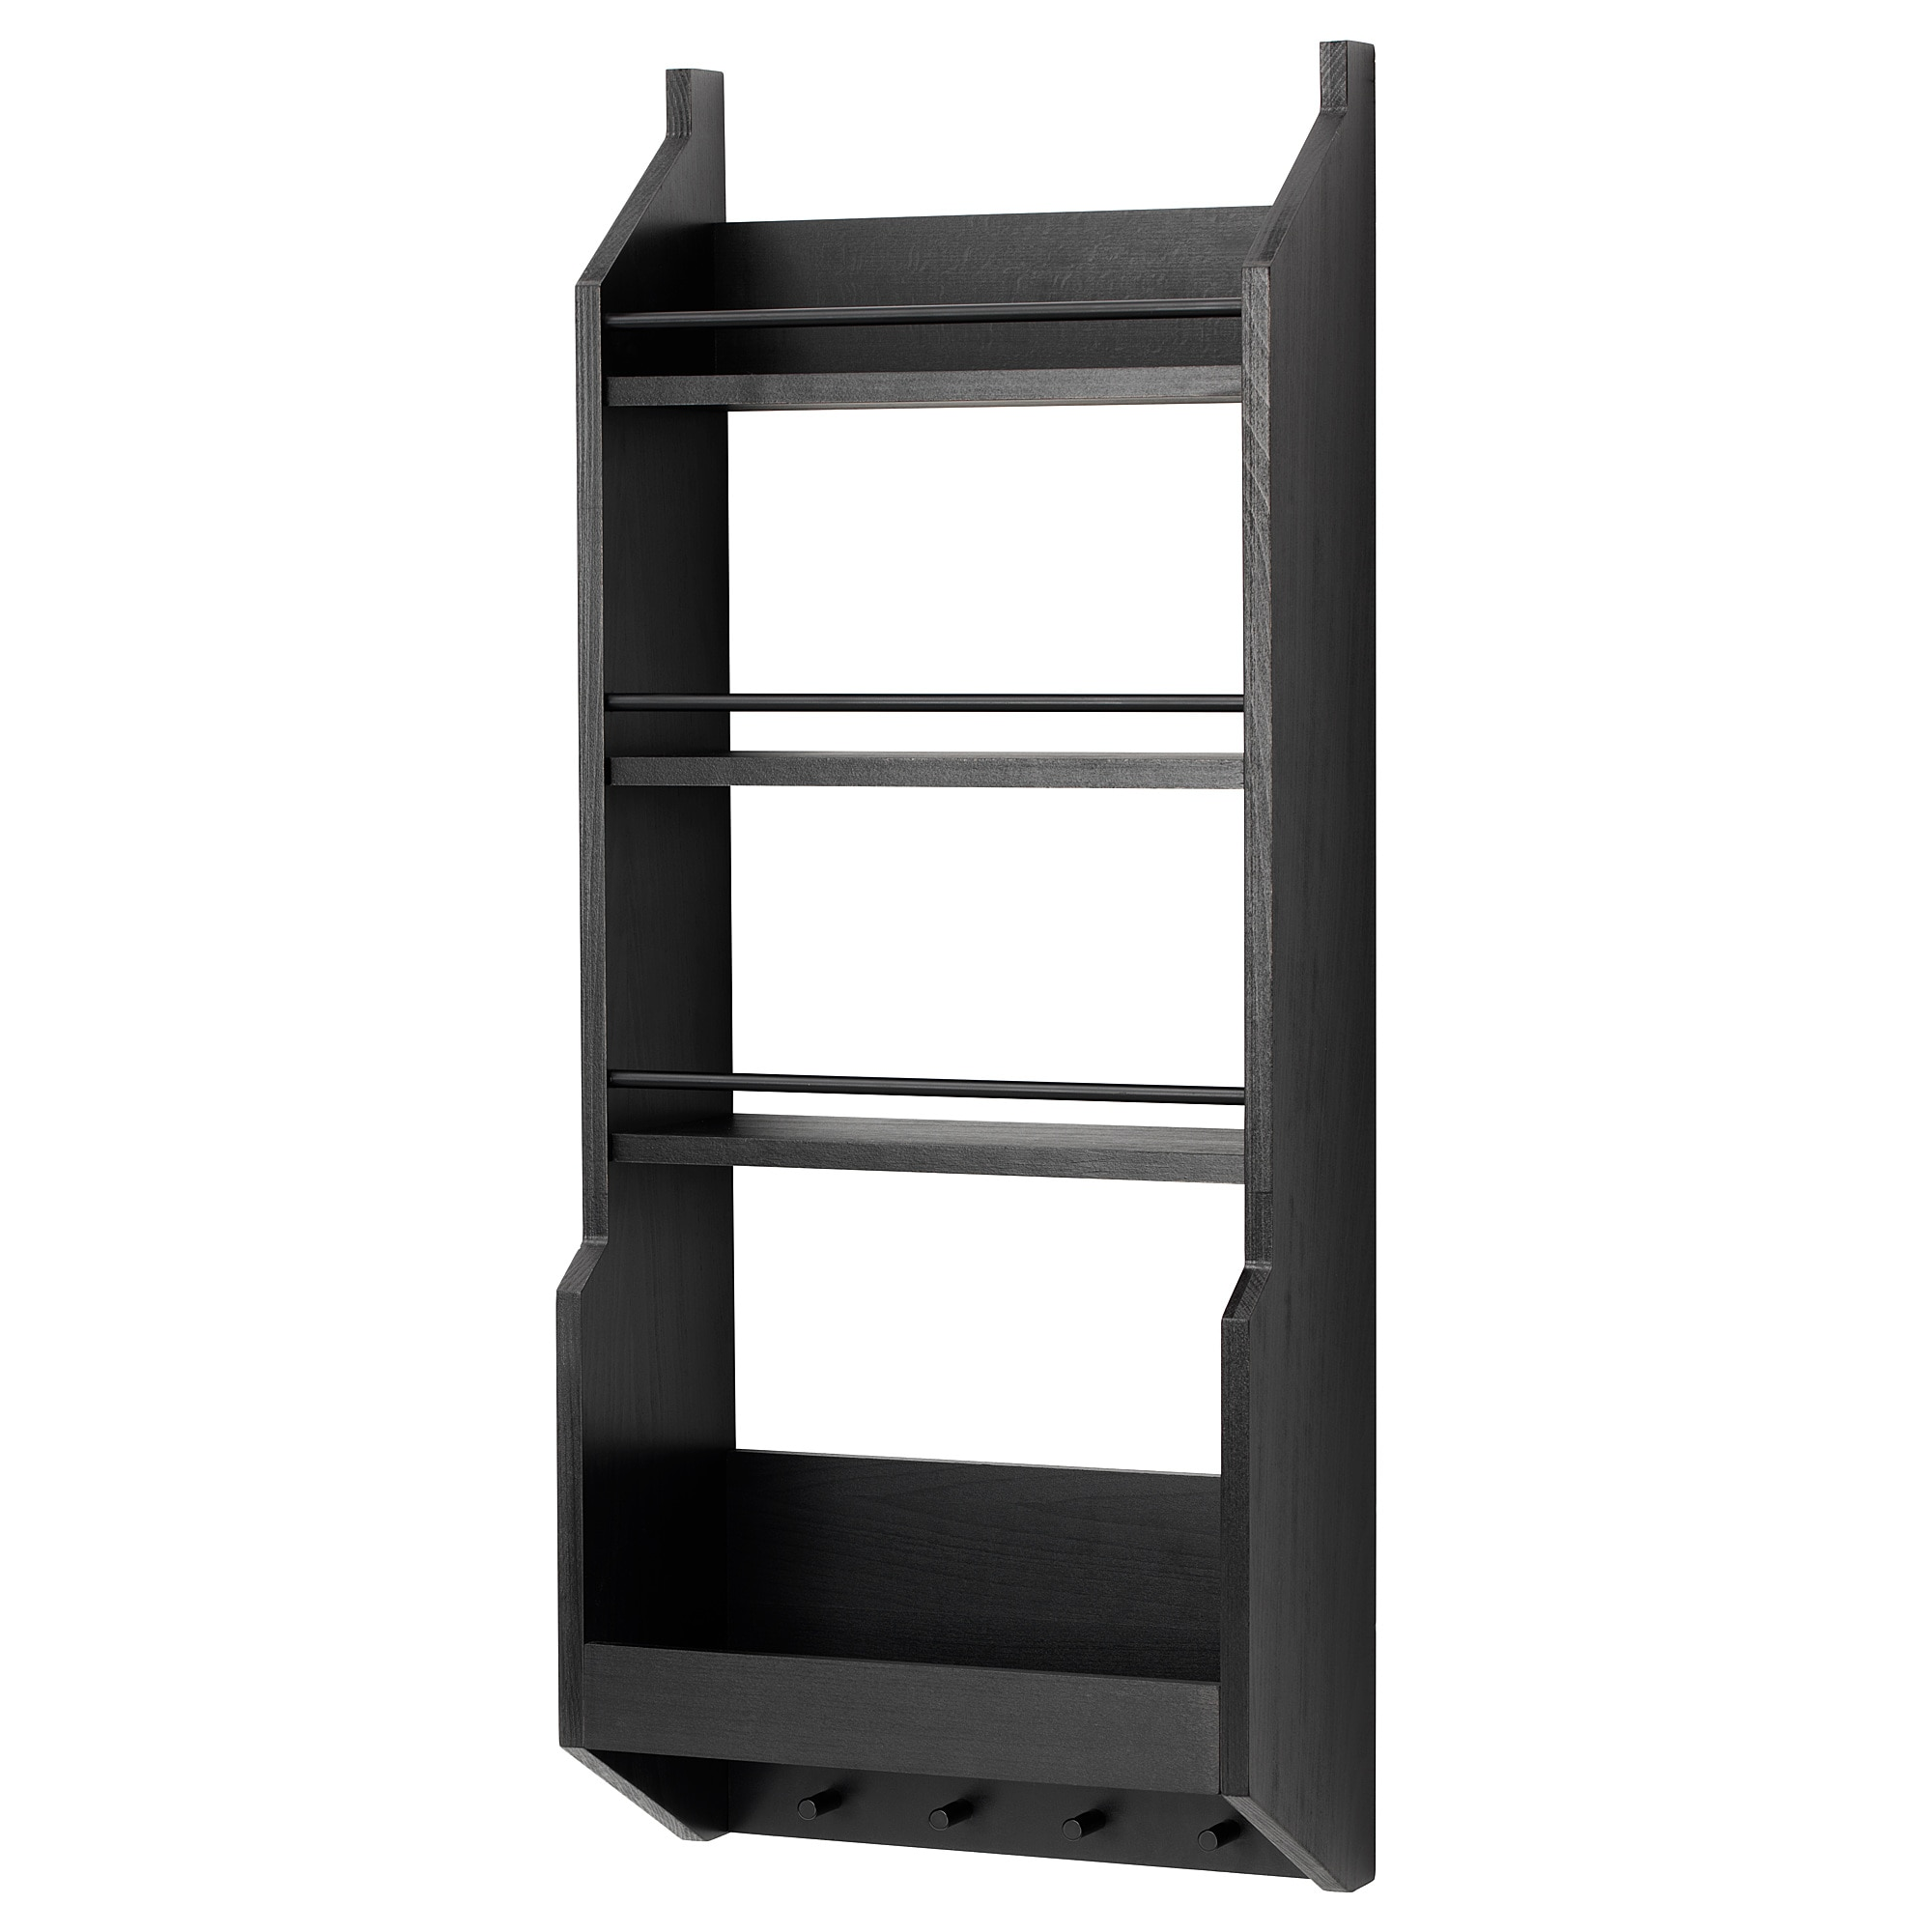 floating shelves wall shelf brackets ikea vadholma black gloss standard height kitchen table with storage entryway shelving unit vegetable rack open design ideas space between